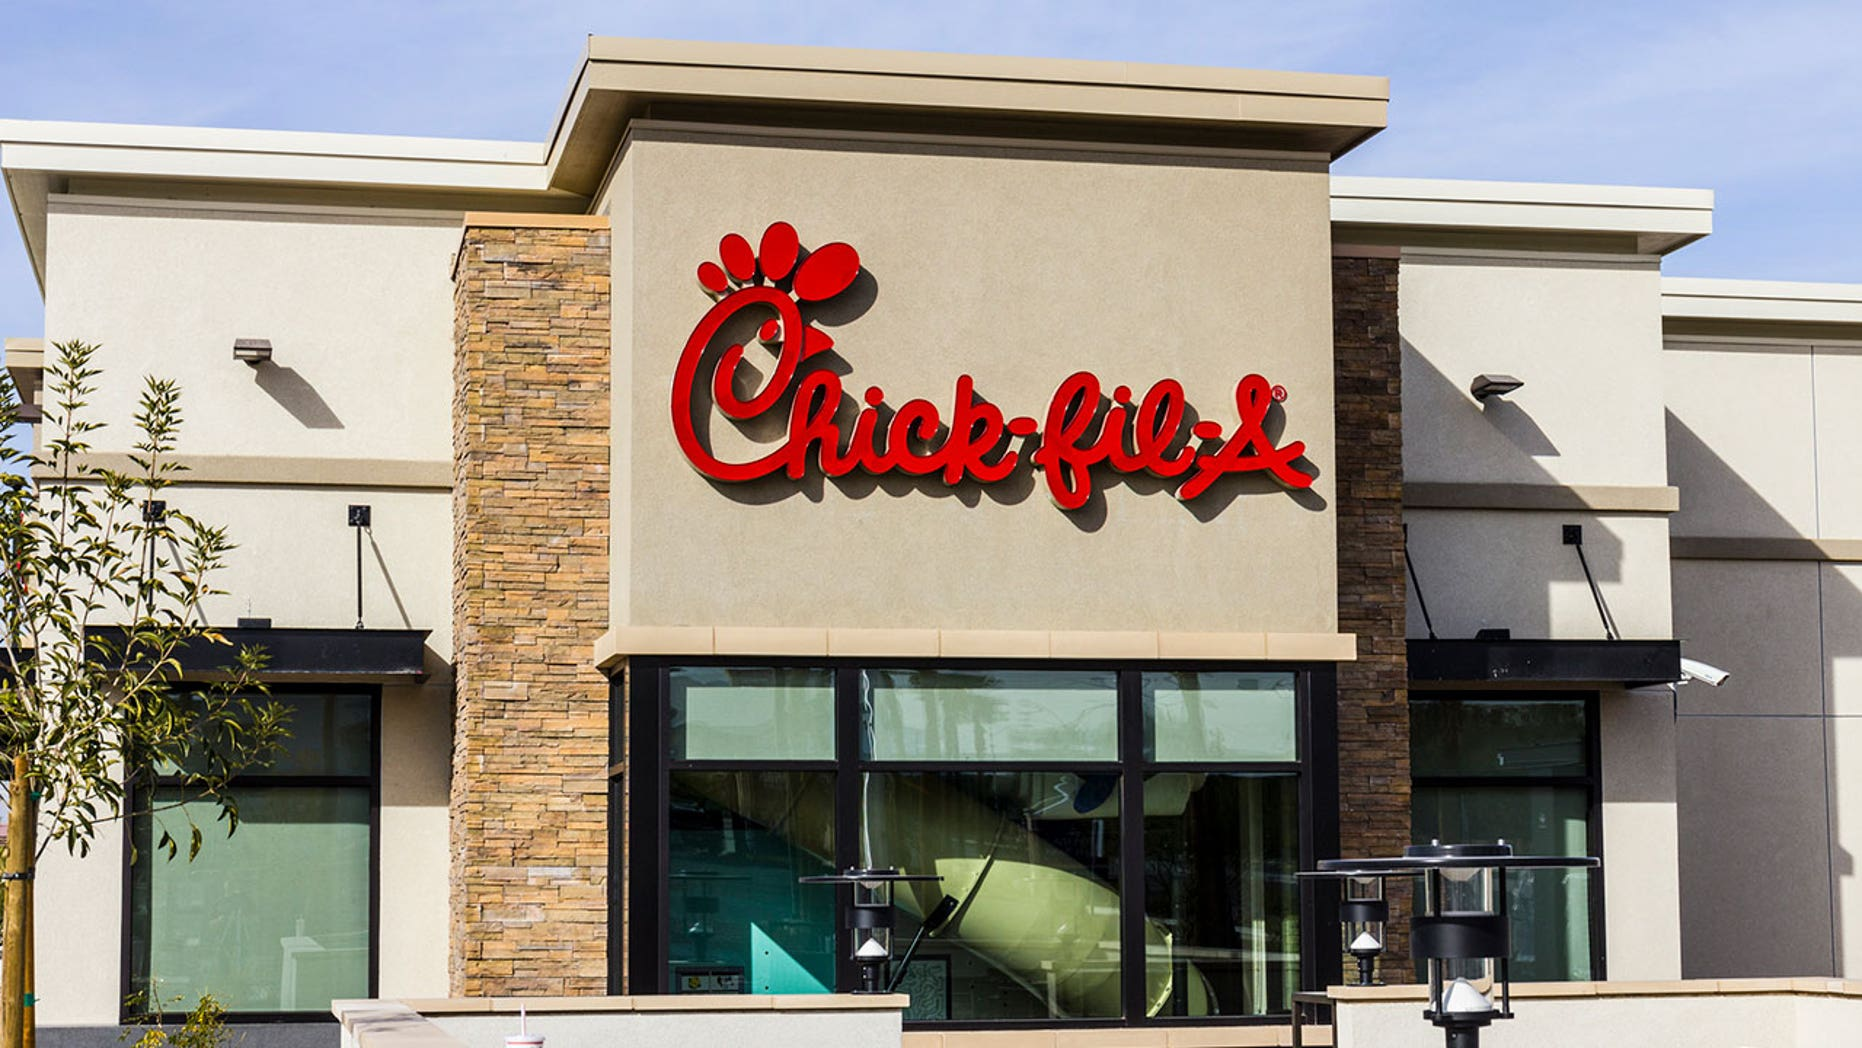 America thinks you're tops, Chick-fil-A.